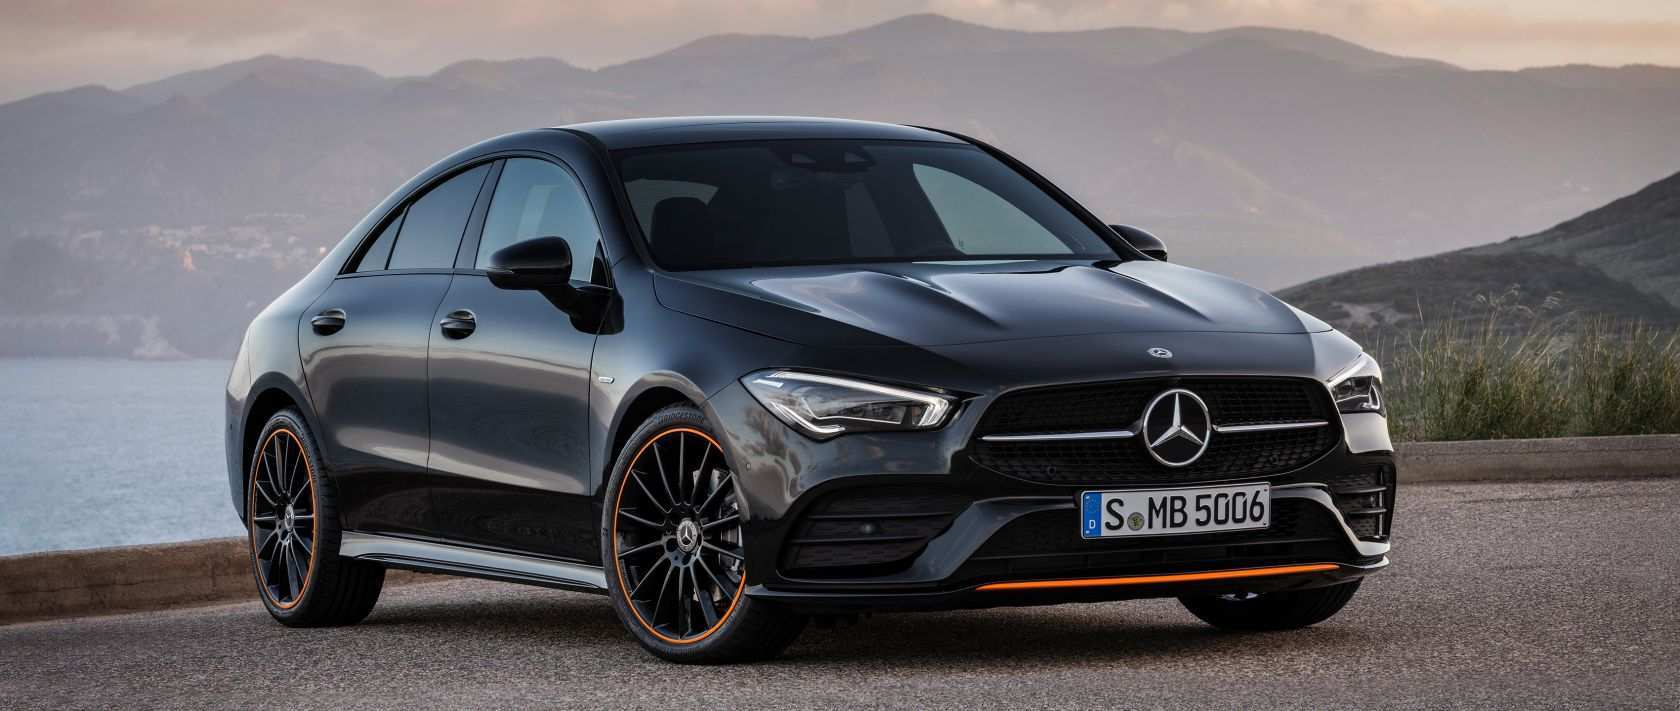 63 All New Mercedes Modellen 2019 Release Date And Concept